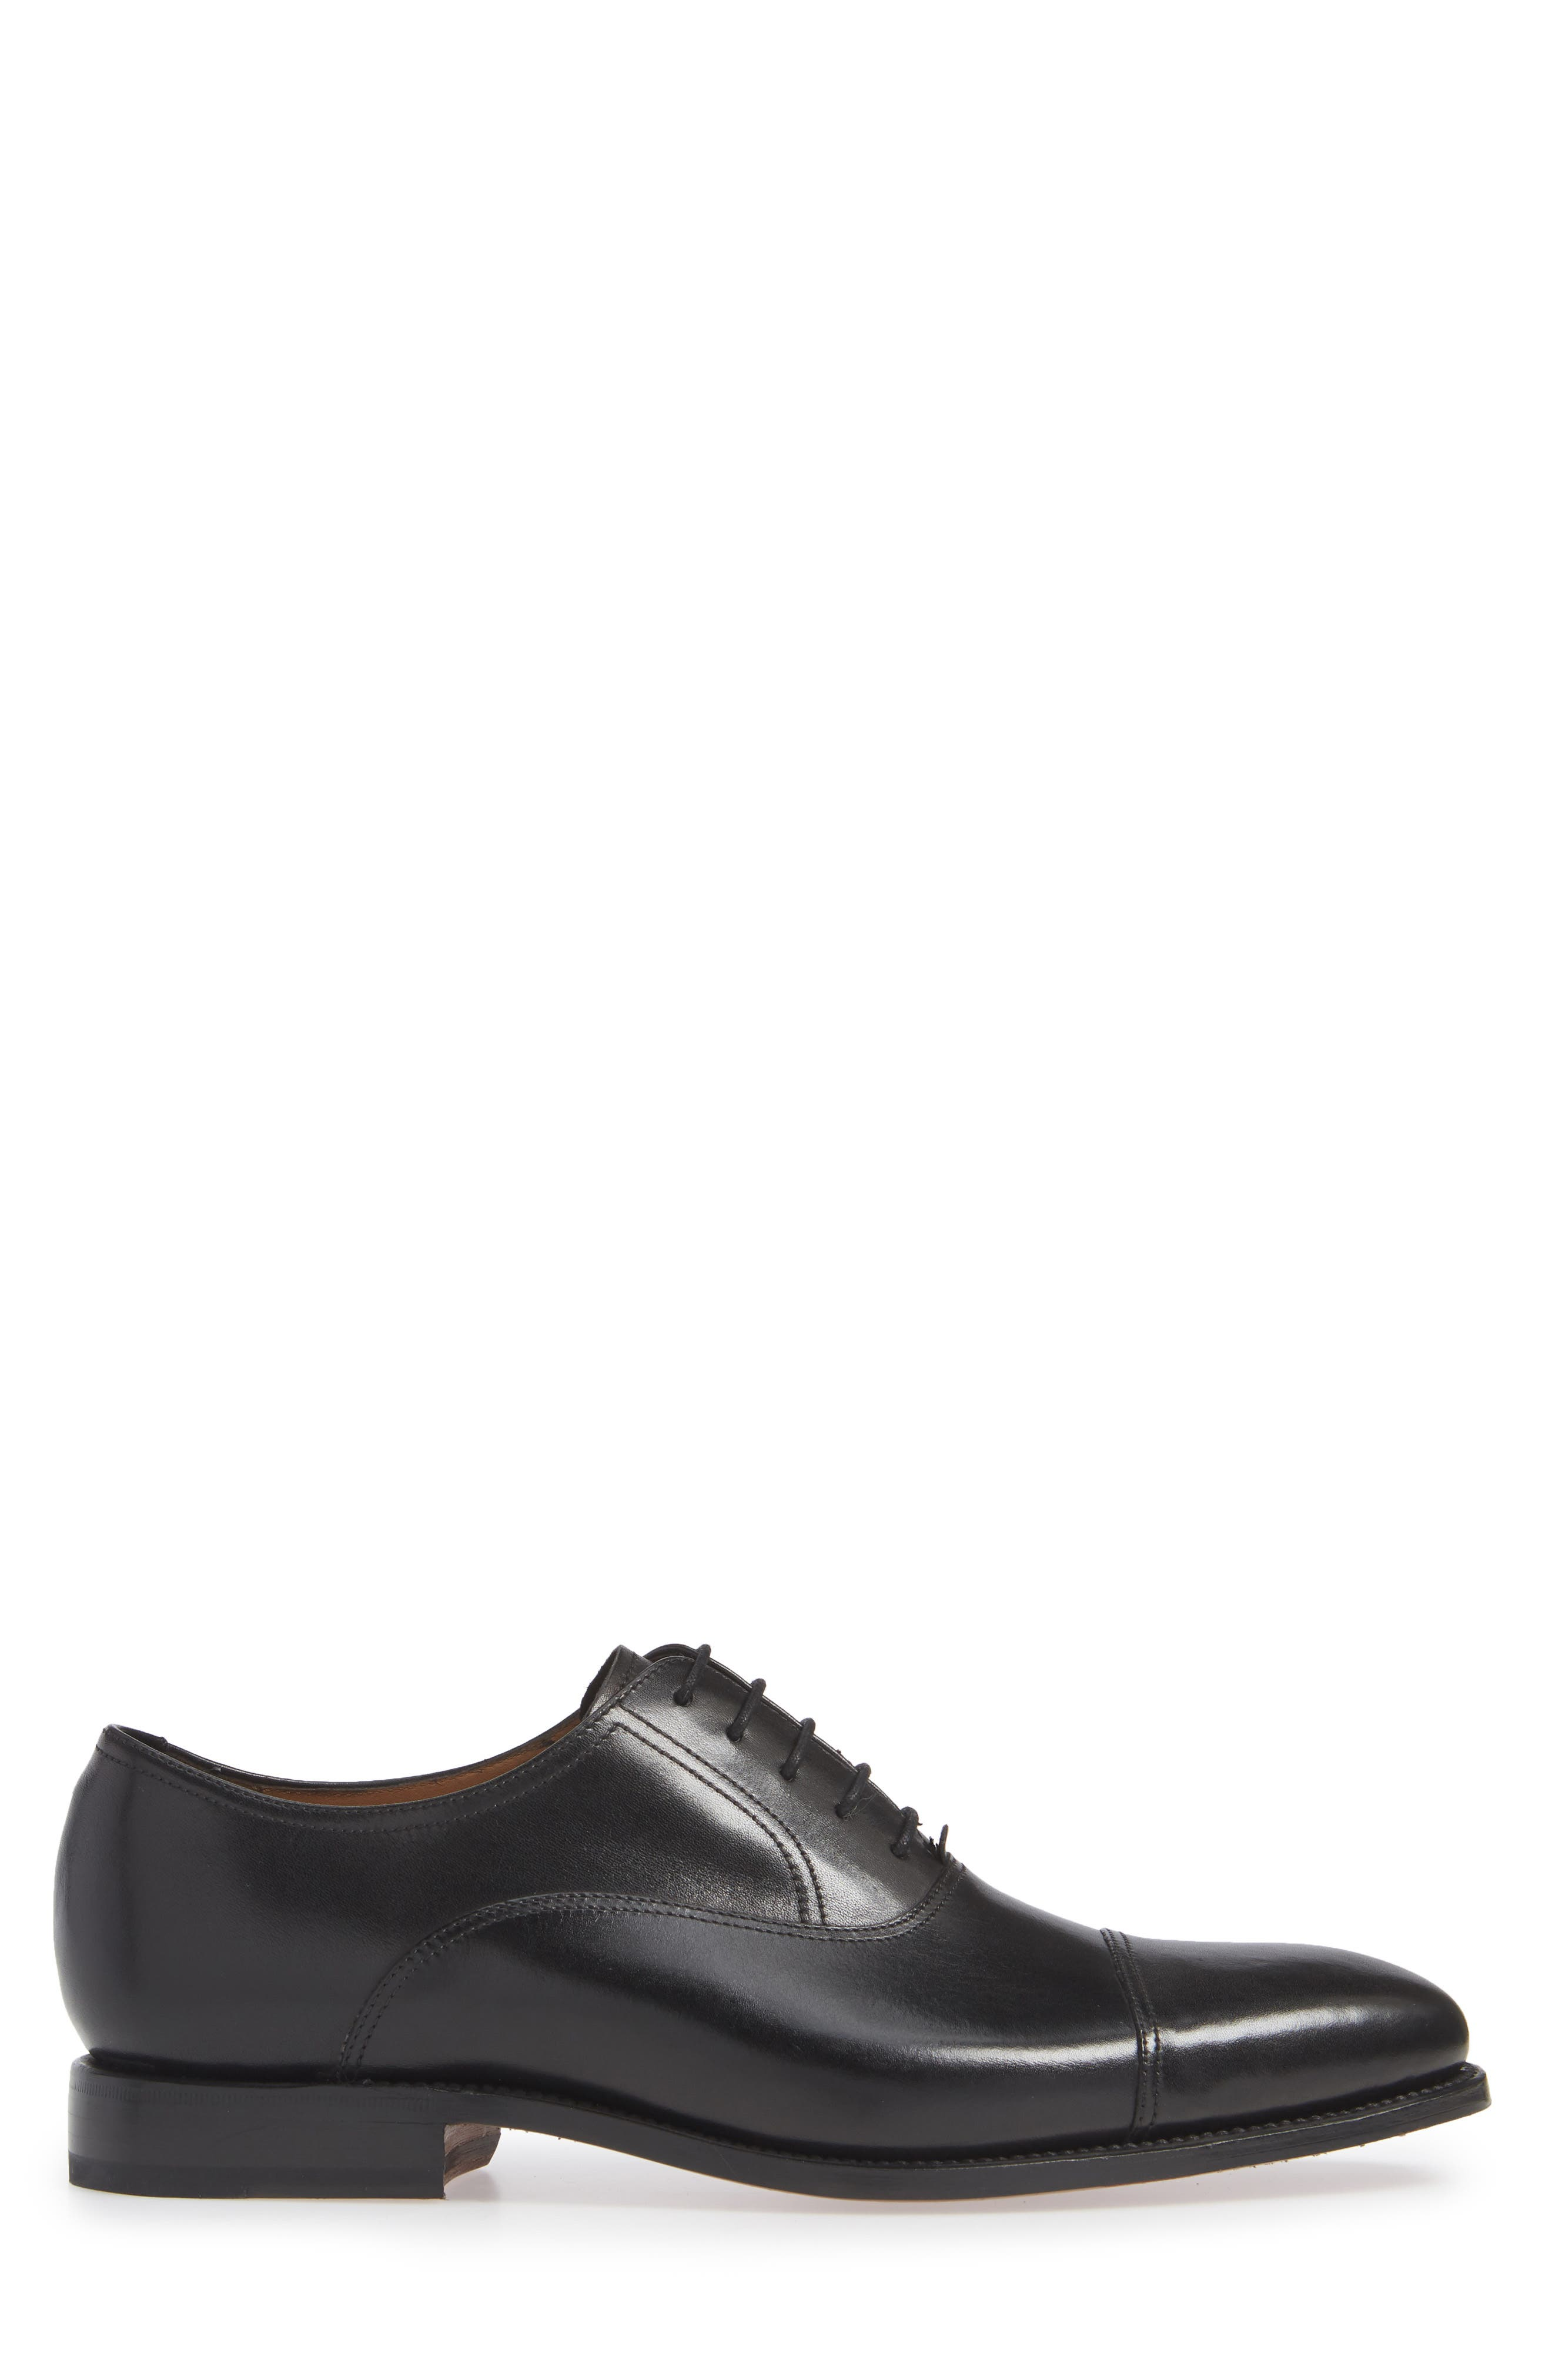 Tiburon Cap Toe Oxford,                             Alternate thumbnail 3, color,                             BLACK LEATHER